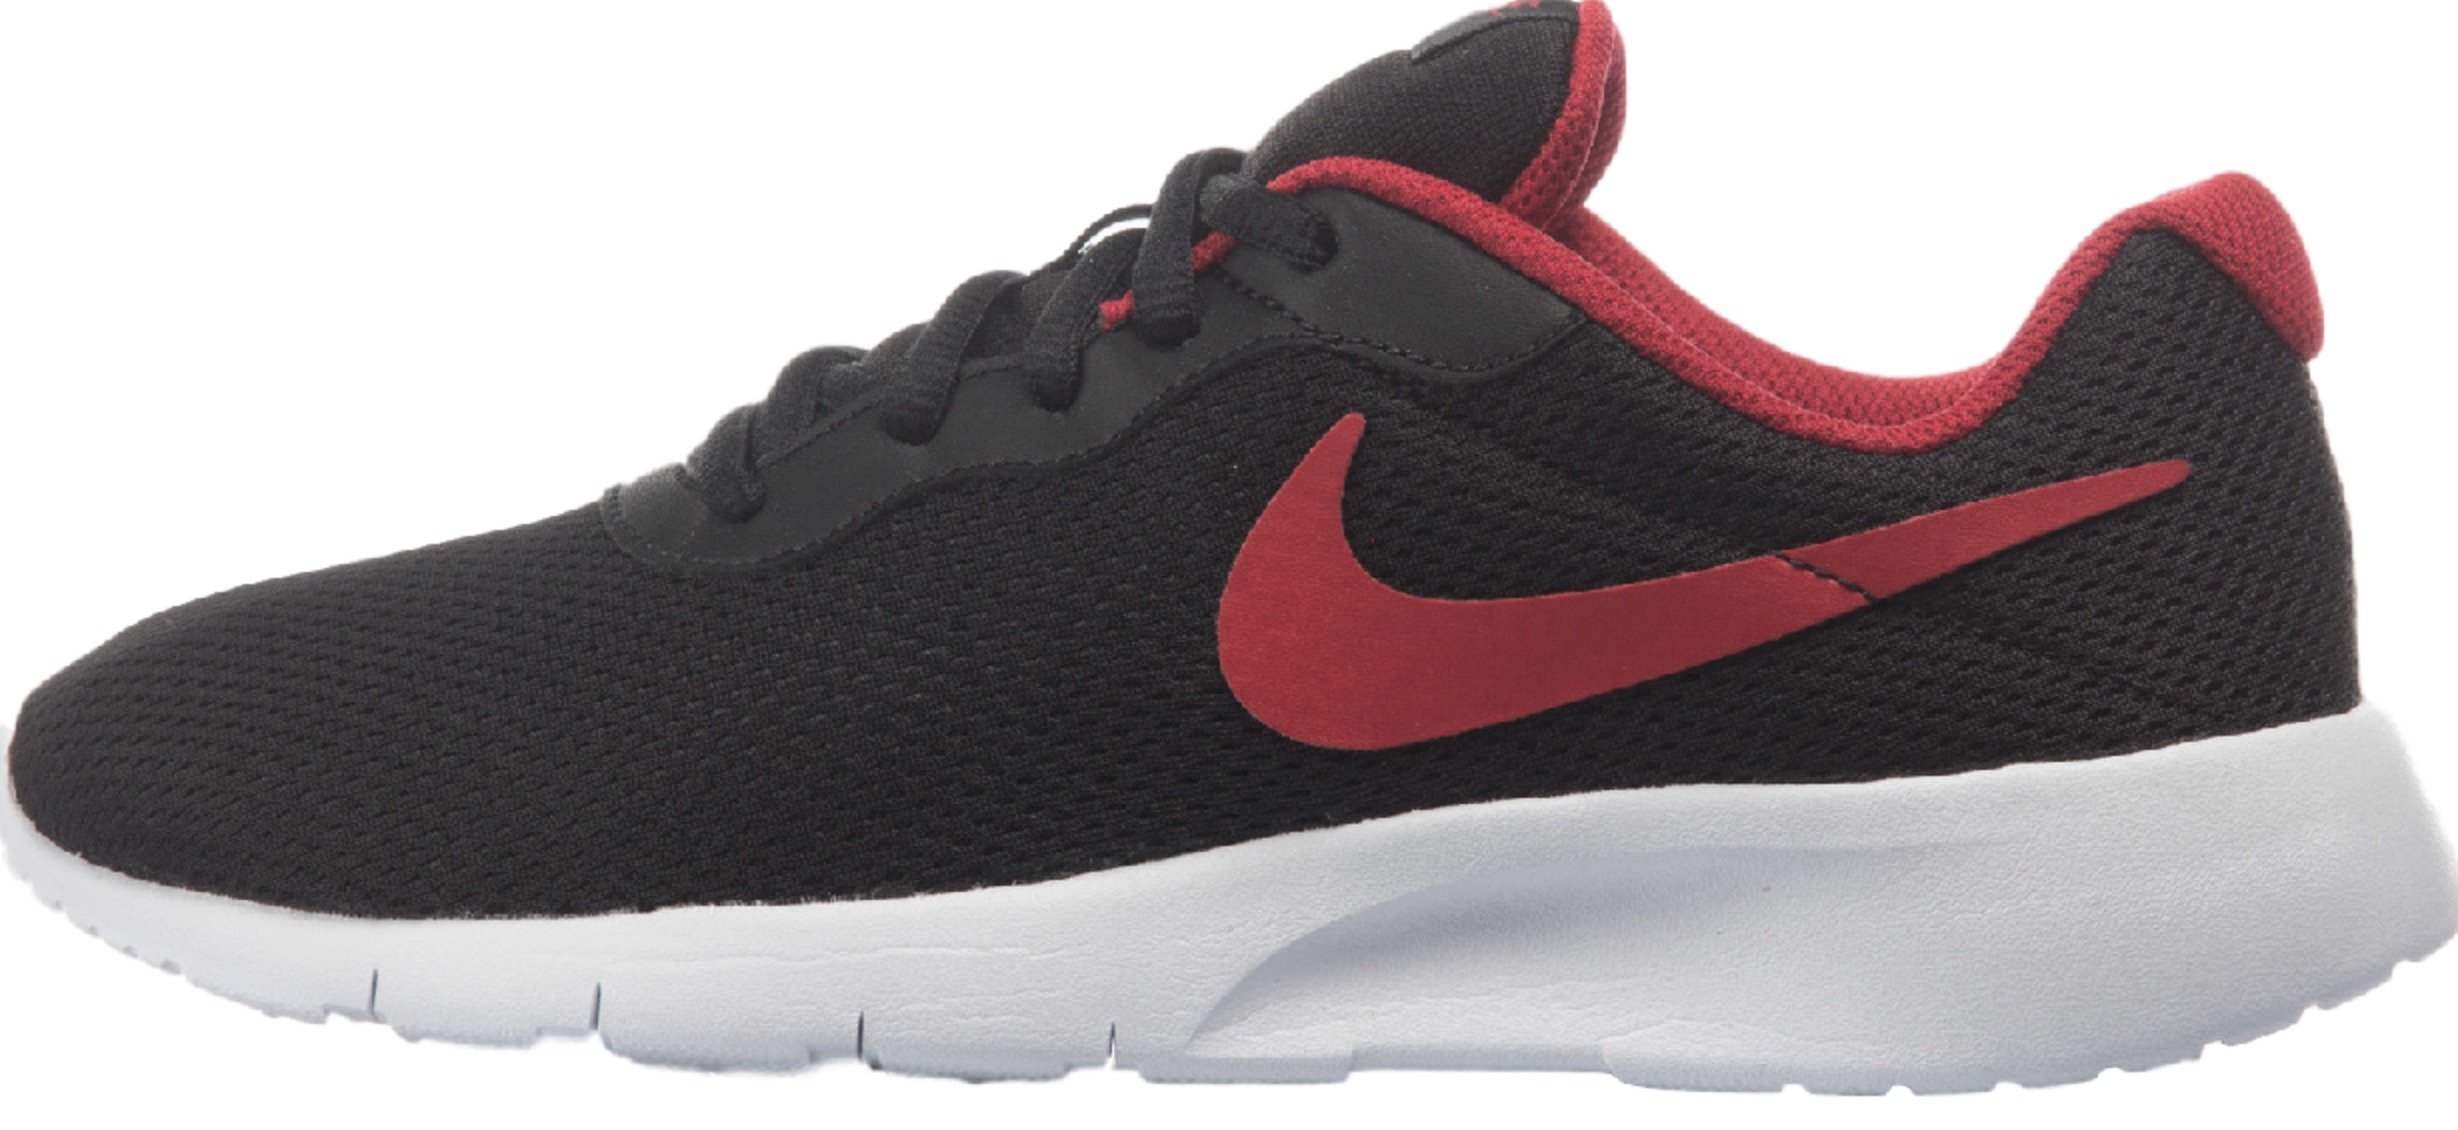 Nike 818381-010 : Boy's Tanjun GS Running Shoes Black/Red